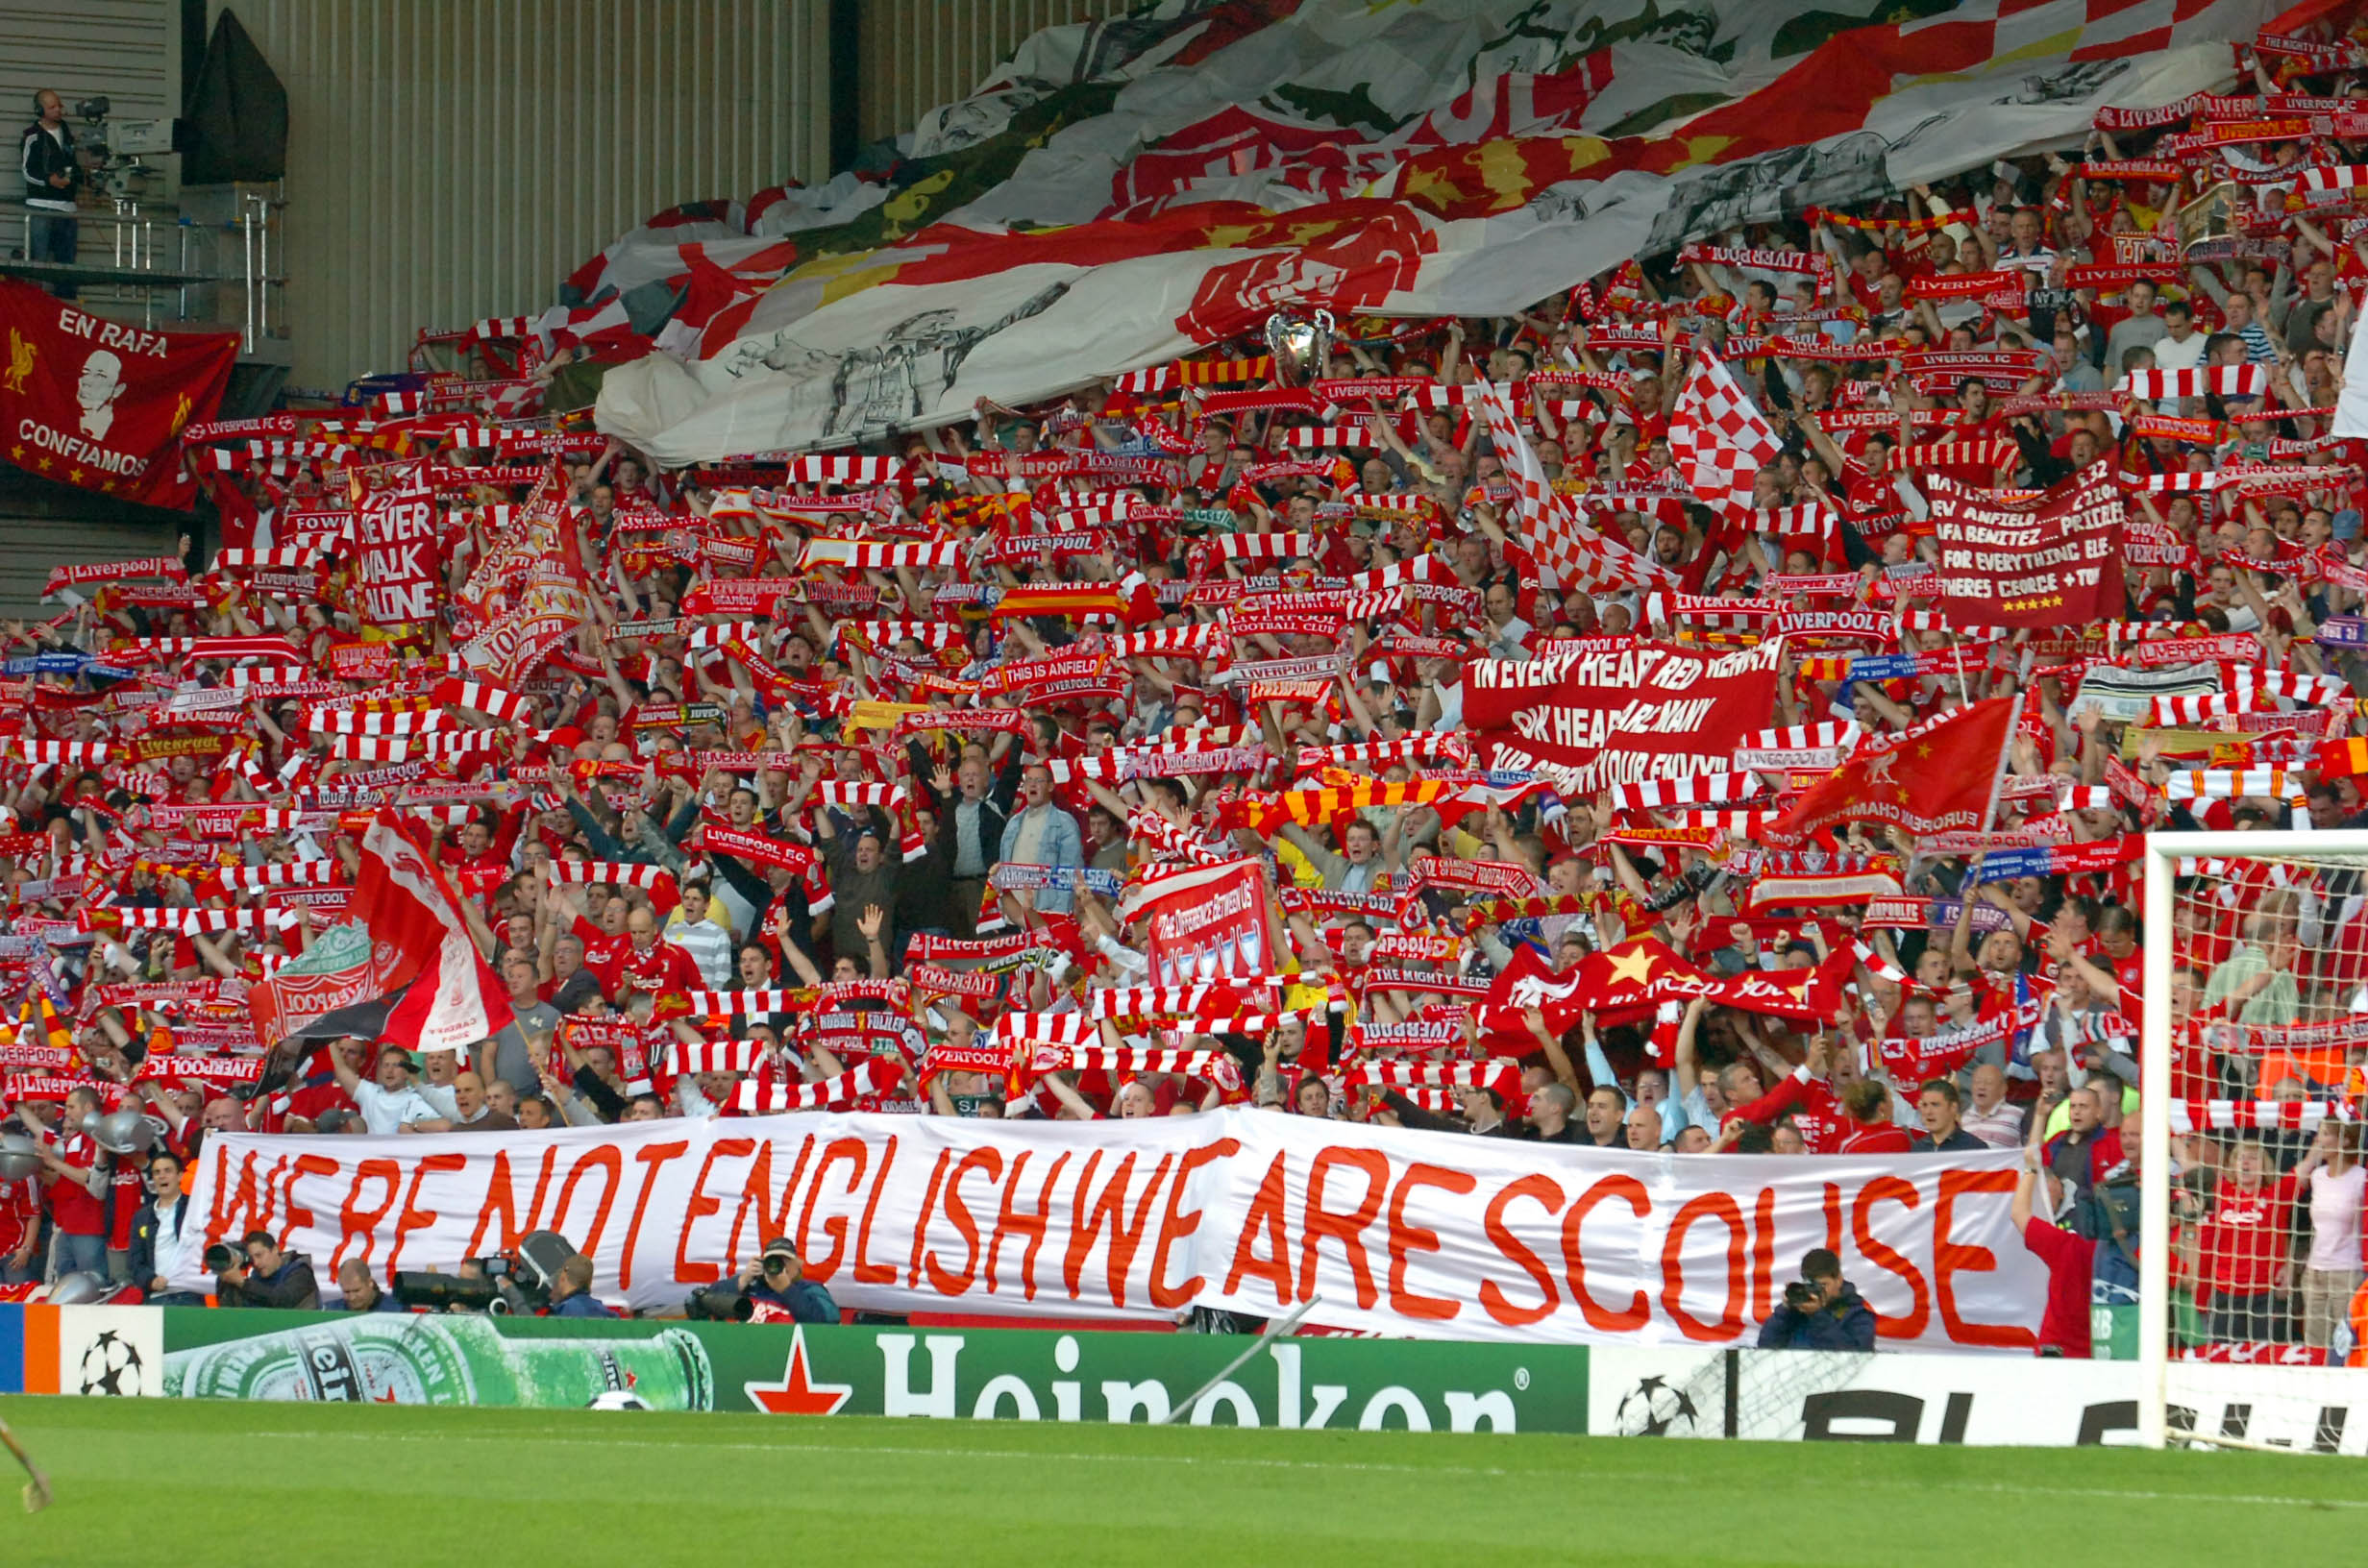 Liverpool tickets update: New initiatives announced after last season's walkout